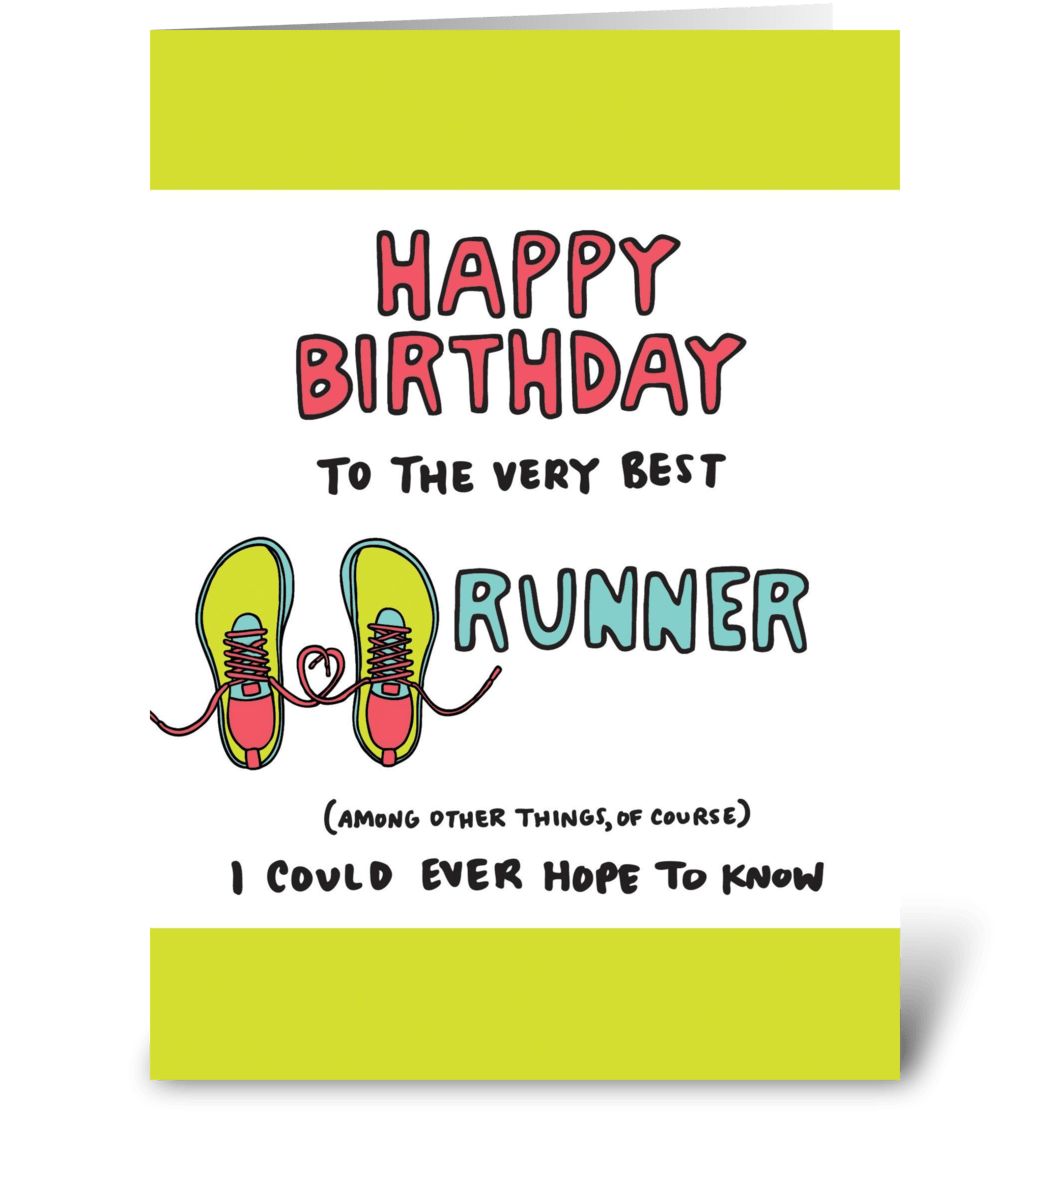 Happy Birthday Runner